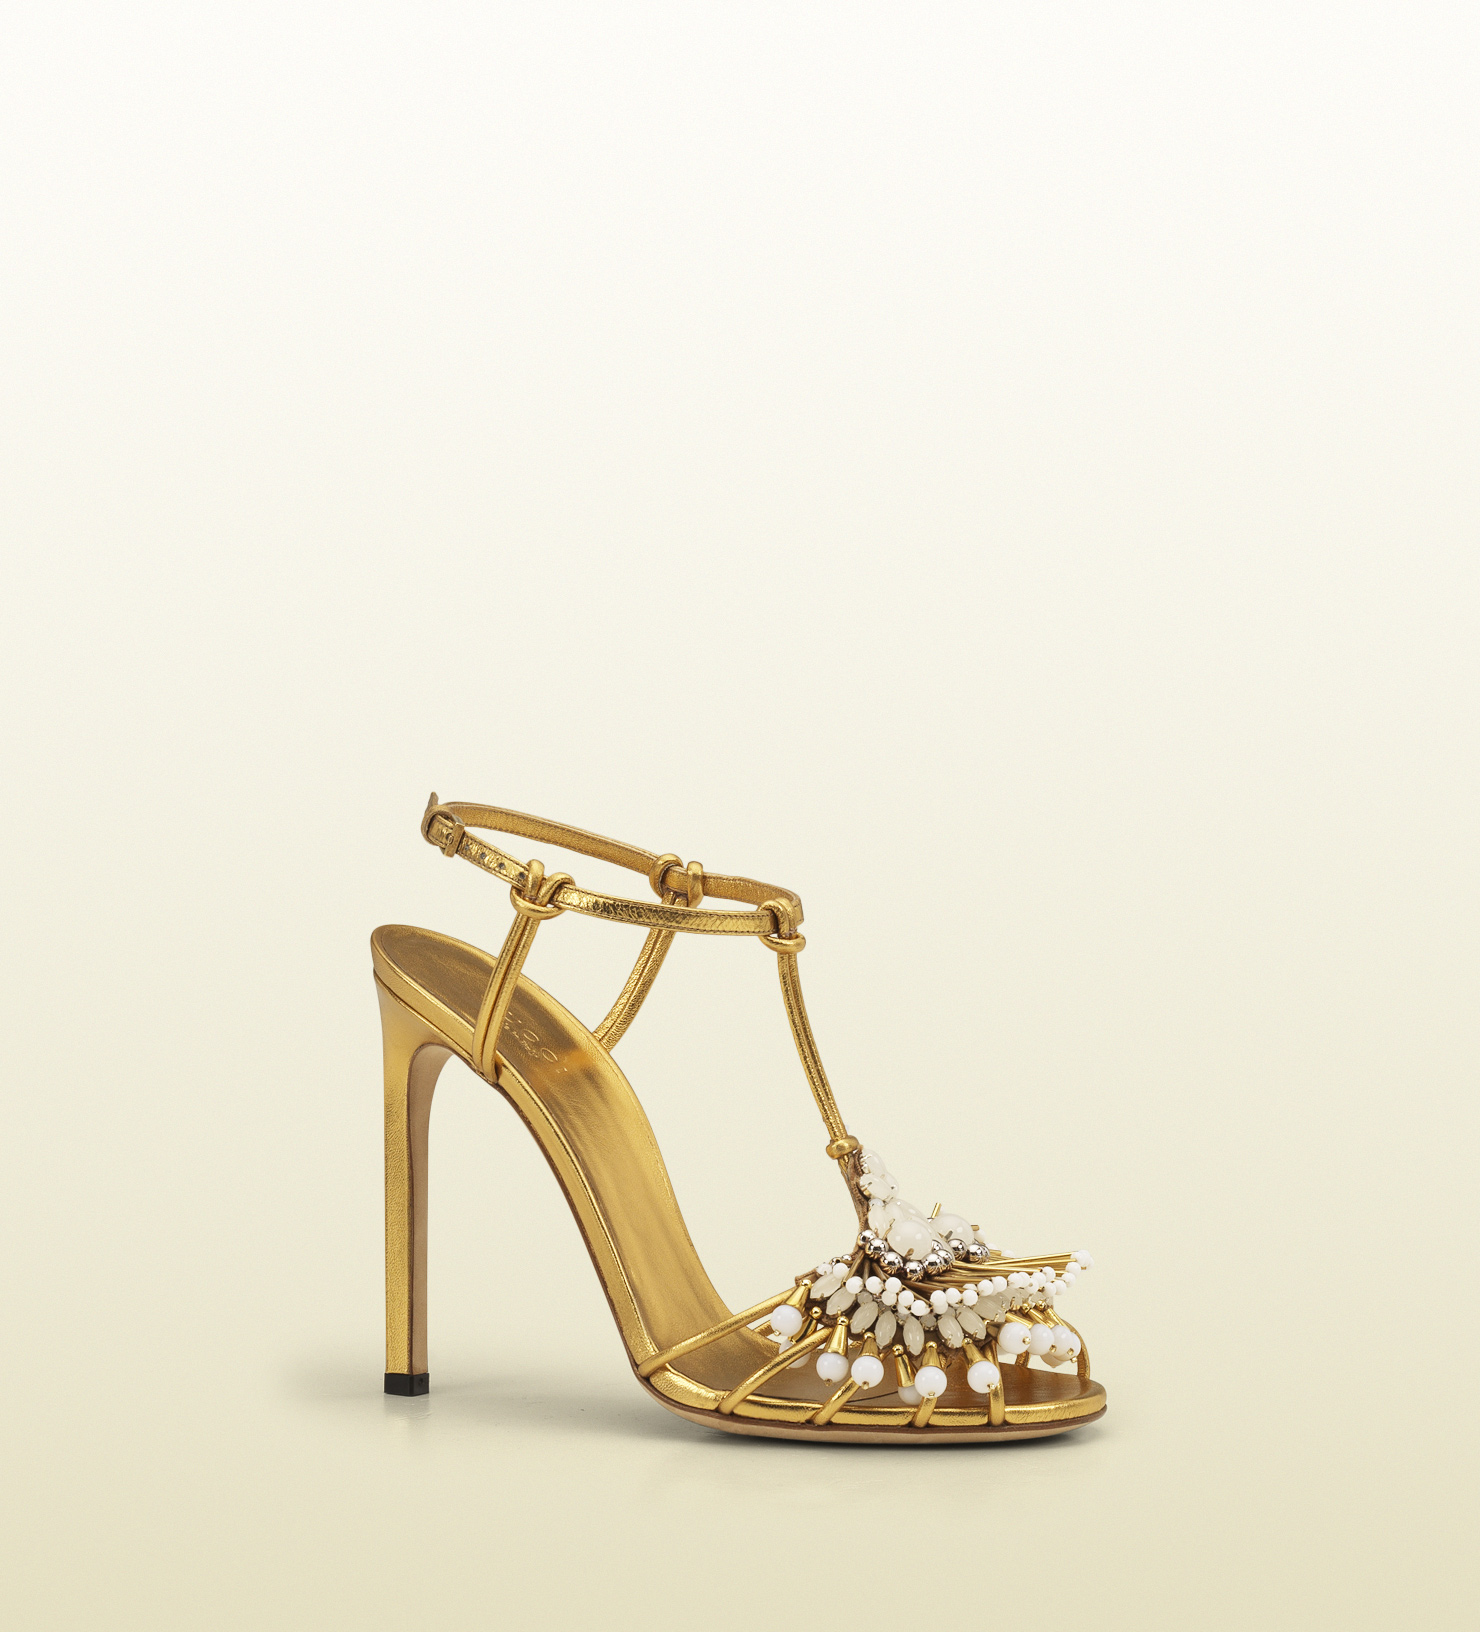 Gucci Phoebe High Heel Sandal with Jeweled Embroidery in Metallic ...